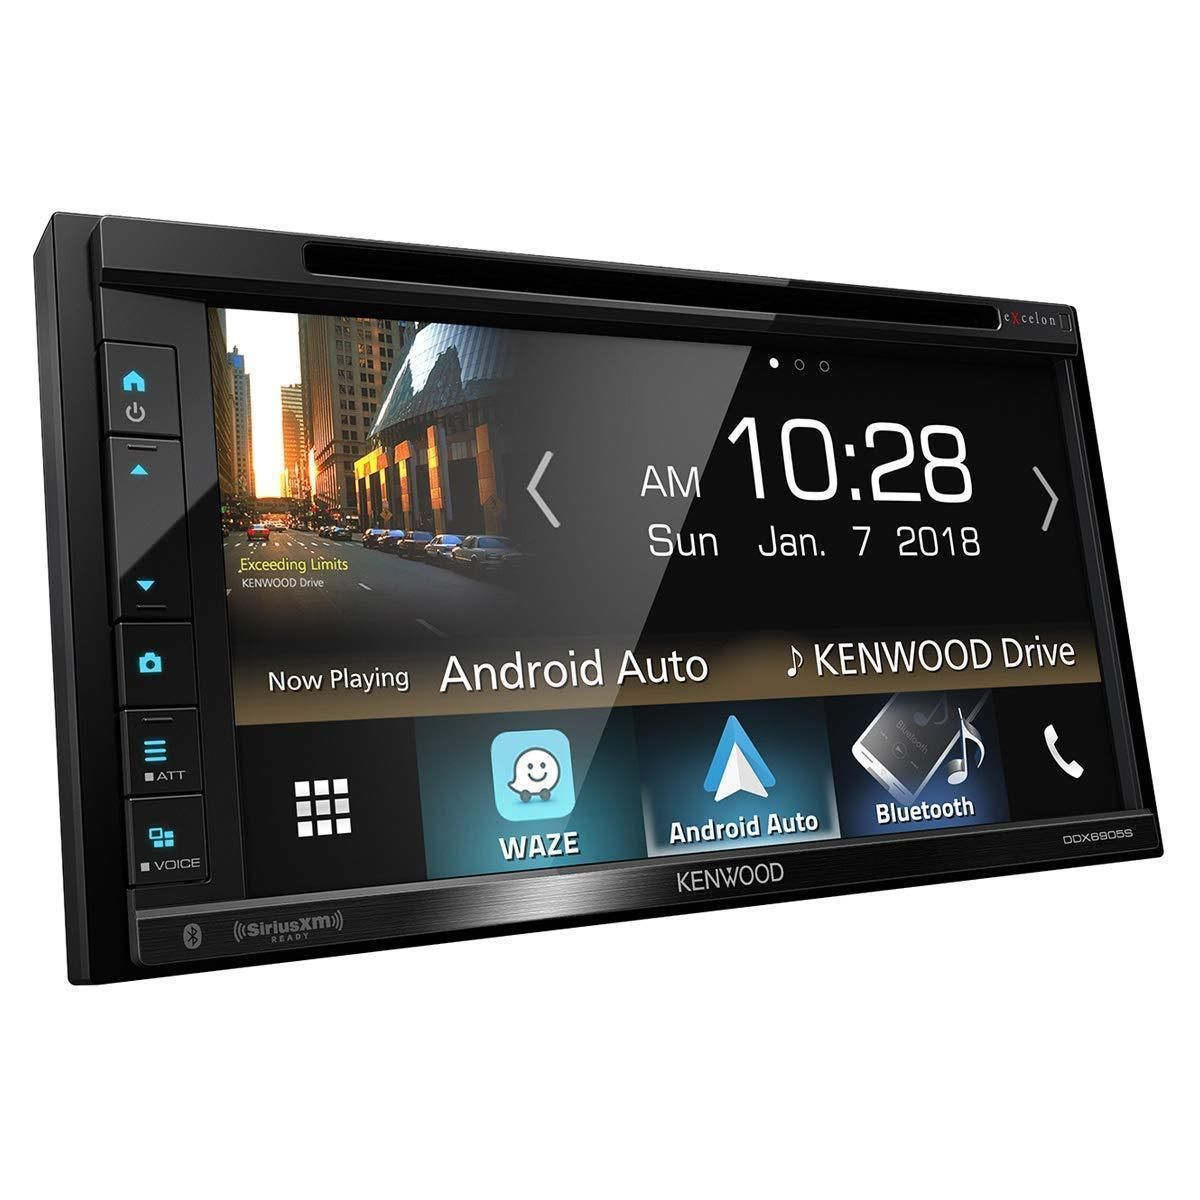 medium resolution of kenwood dnx890hd excelon 6 95 double din navigation dvd receiver by kenwood 1199 00 the dnx890hd features the latest i